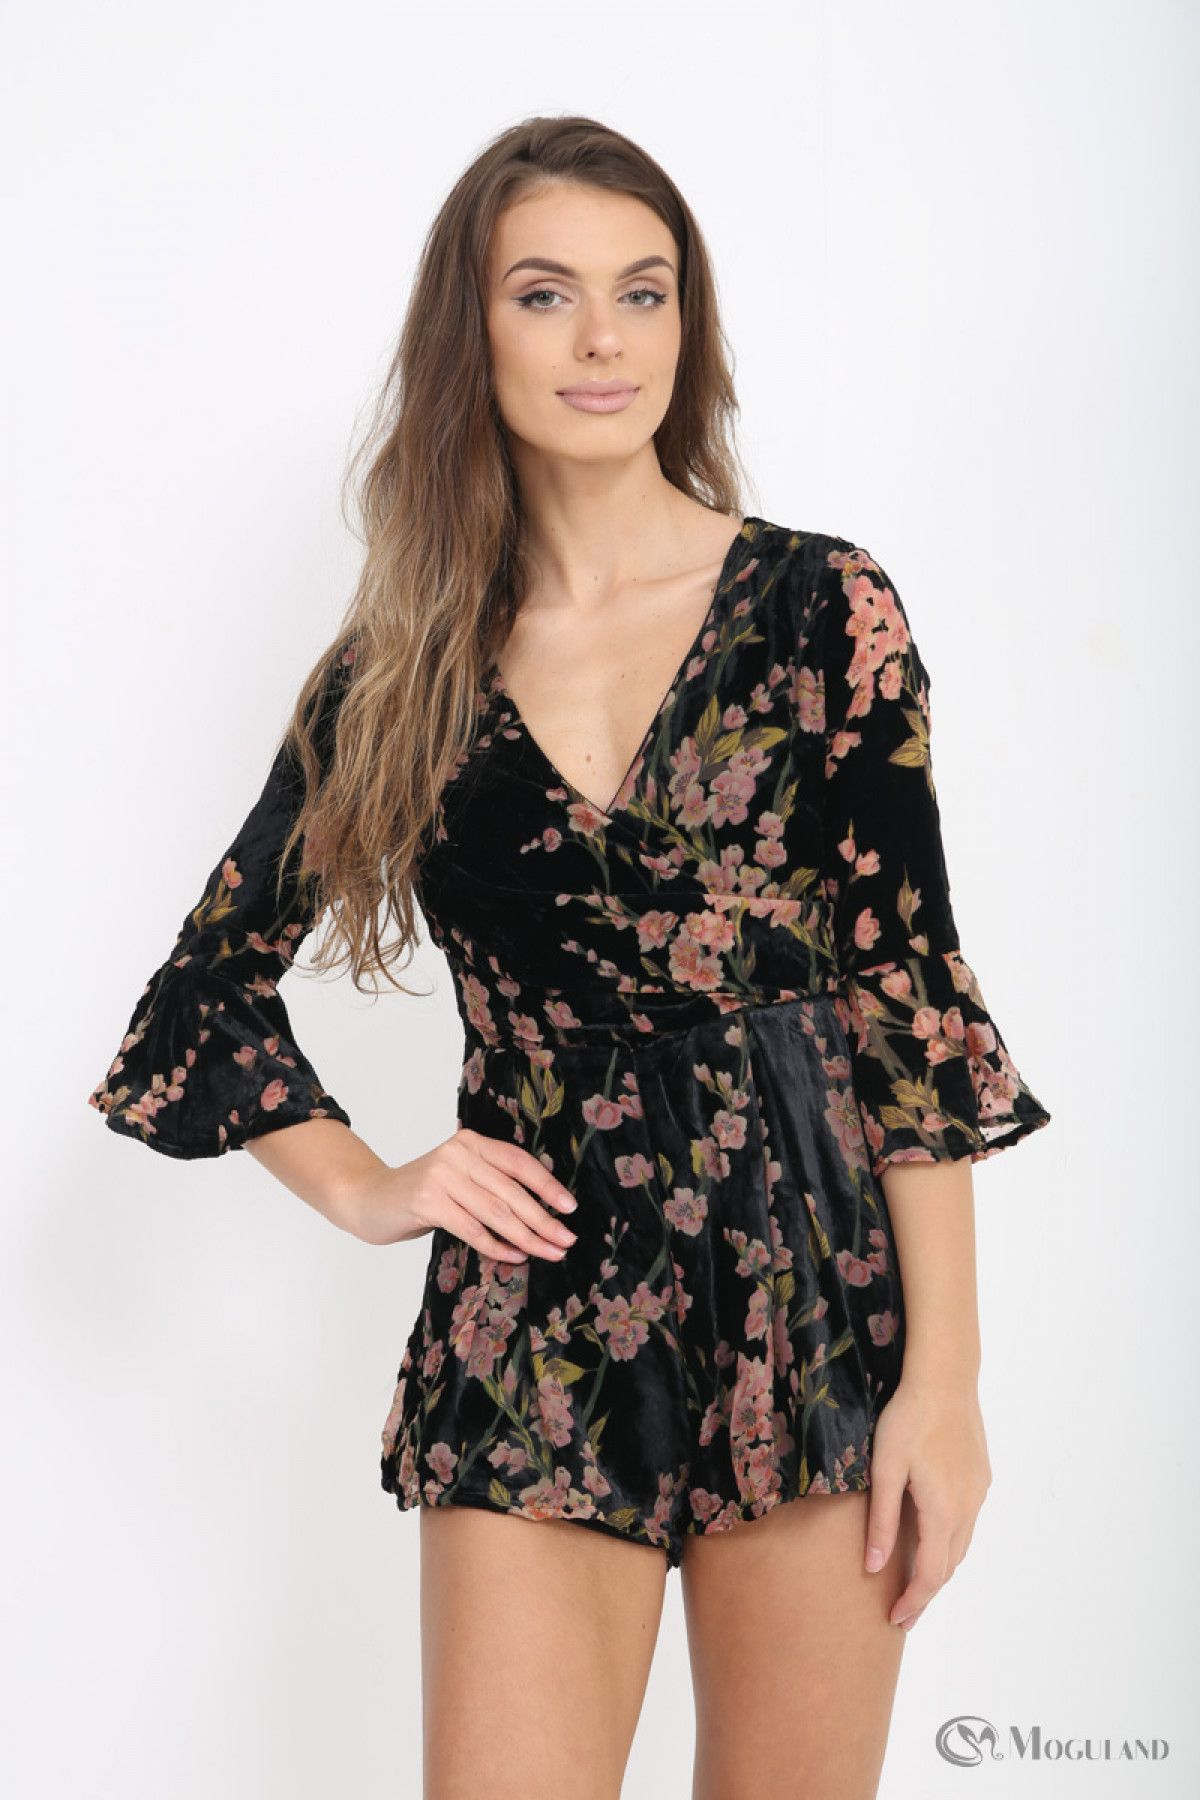 cde6efde00 Ladies black floral velvet playsuit wholesale - Women s Wholesale Clothing  Supplier